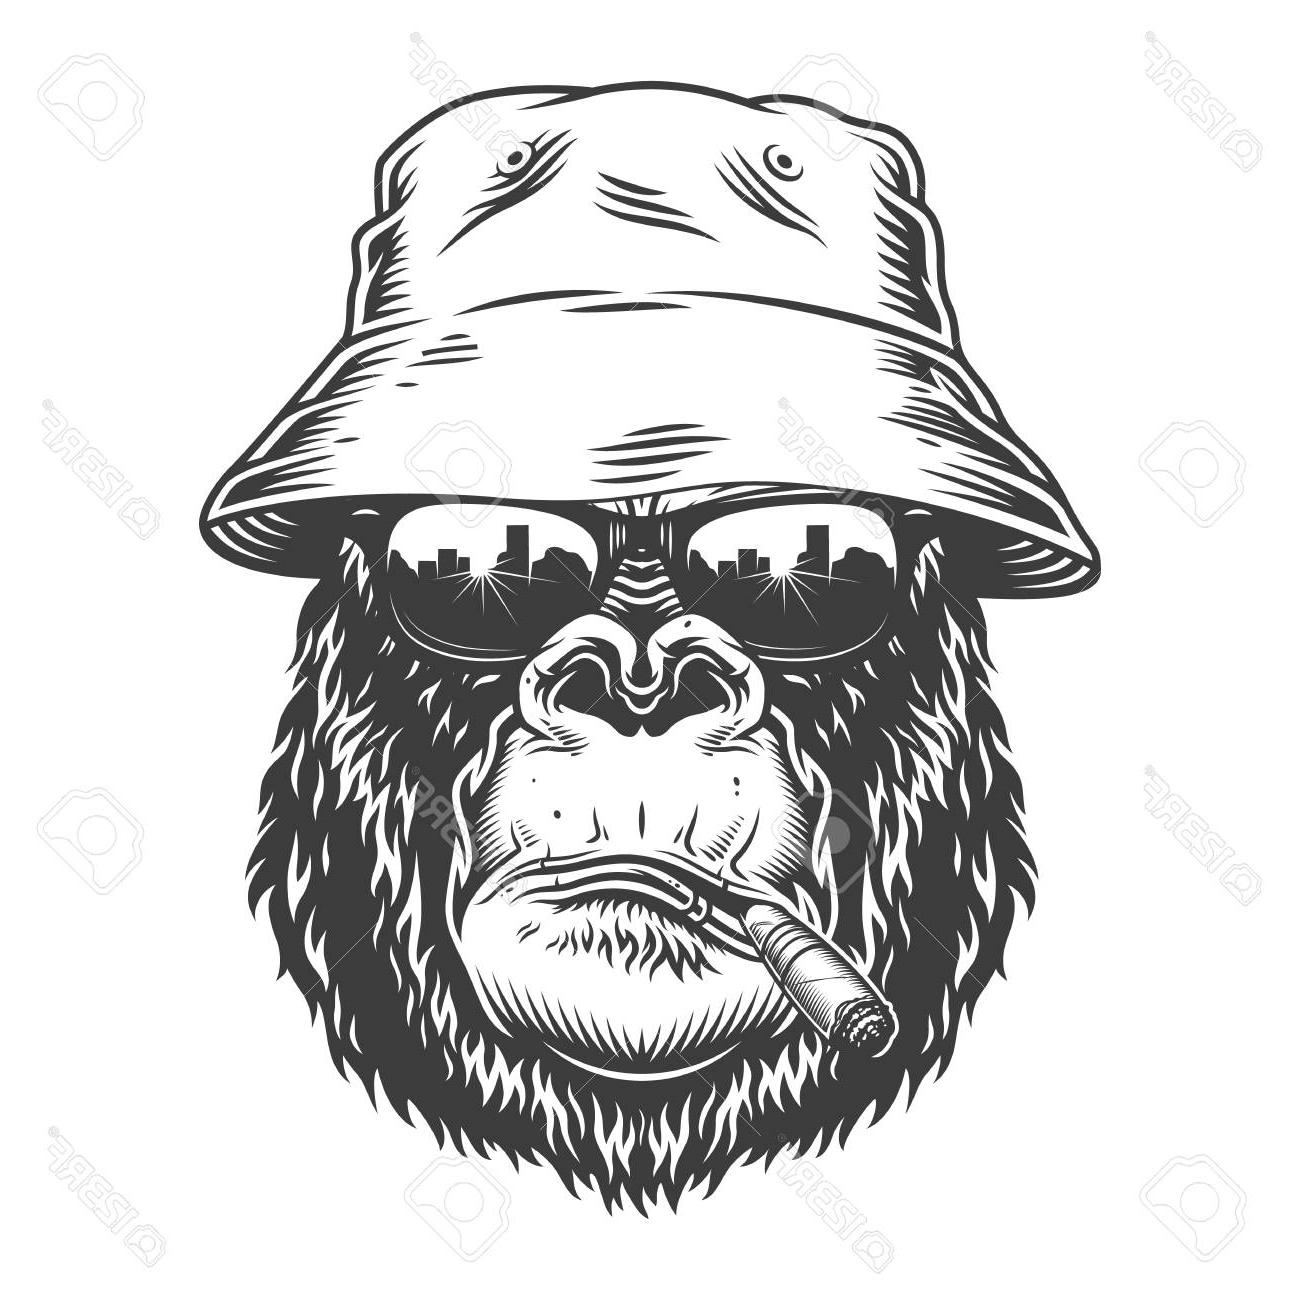 Top of the head clipart jpg freeuse library Top Gorilla Head Clip Art Drawing » Free Vector Art, Images ... jpg freeuse library